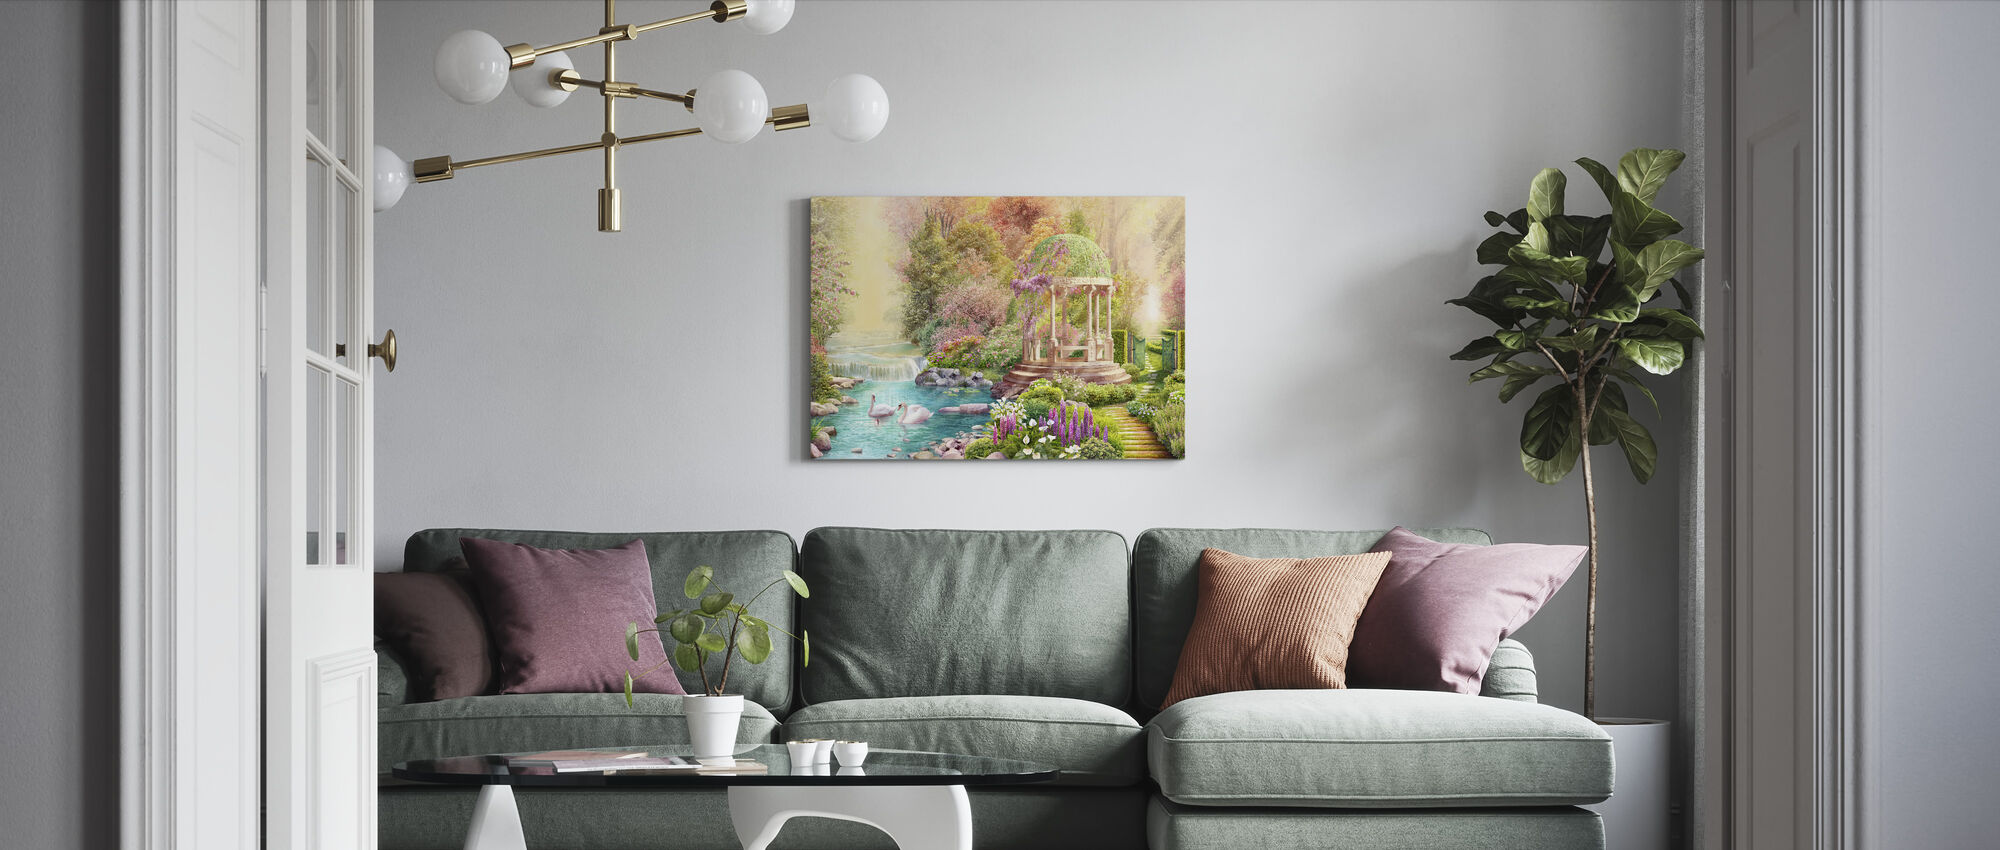 Swans Paradise - Canvas print - Living Room